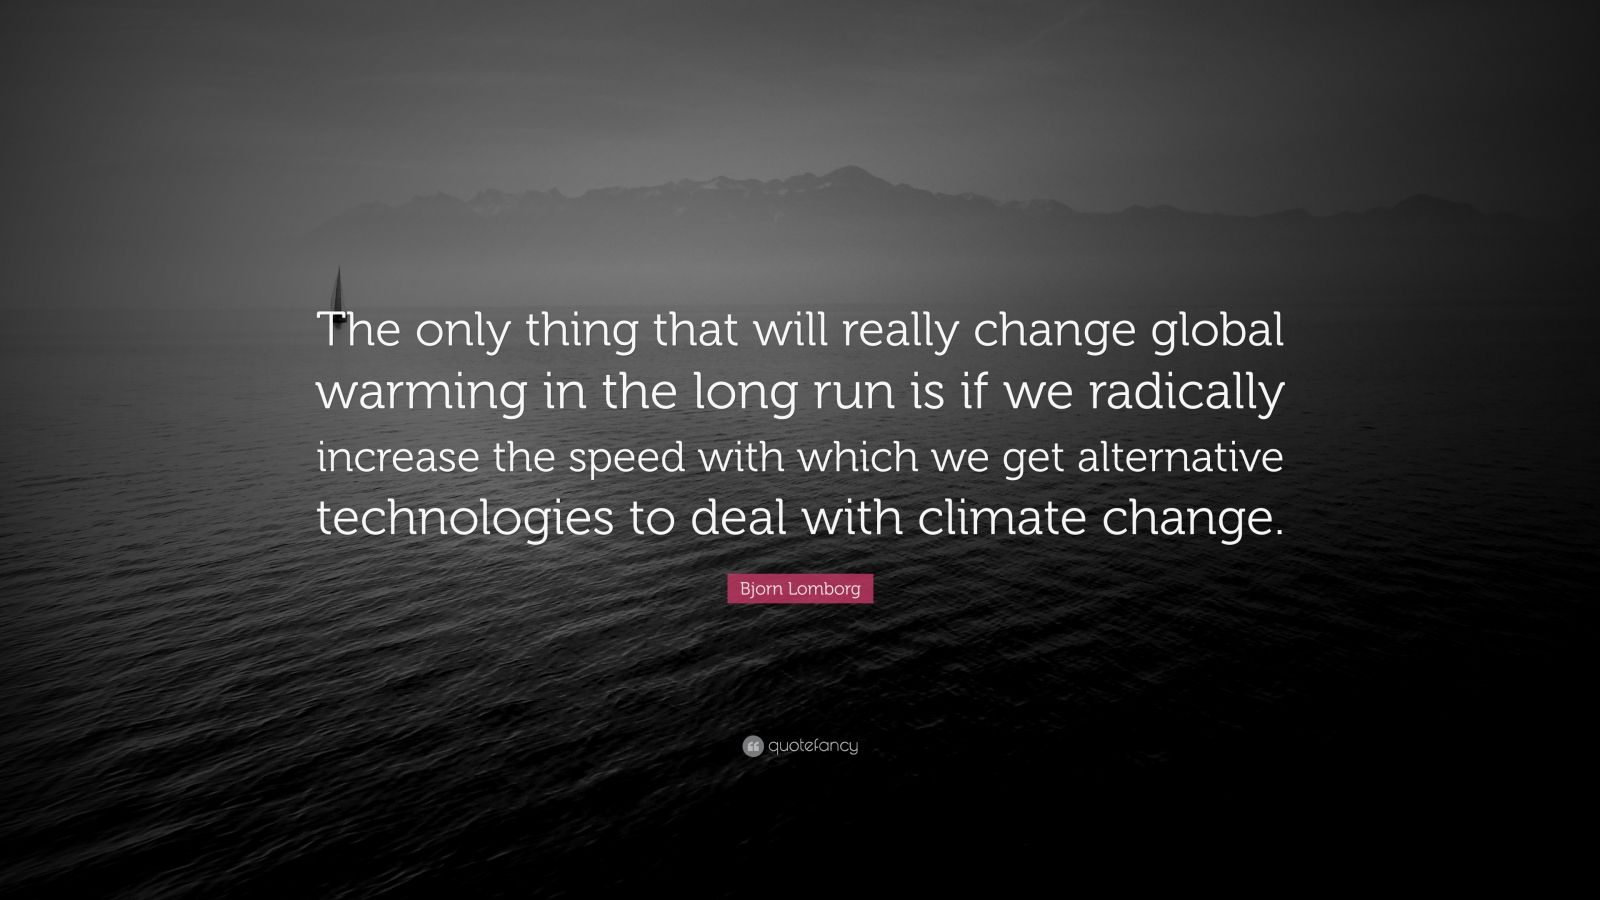 "Bjorn Lomborg Quote: ""The only thing that will really change global warming in the long run is if we radically increase the speed with which we get alternative technologies to deal with climate change."""